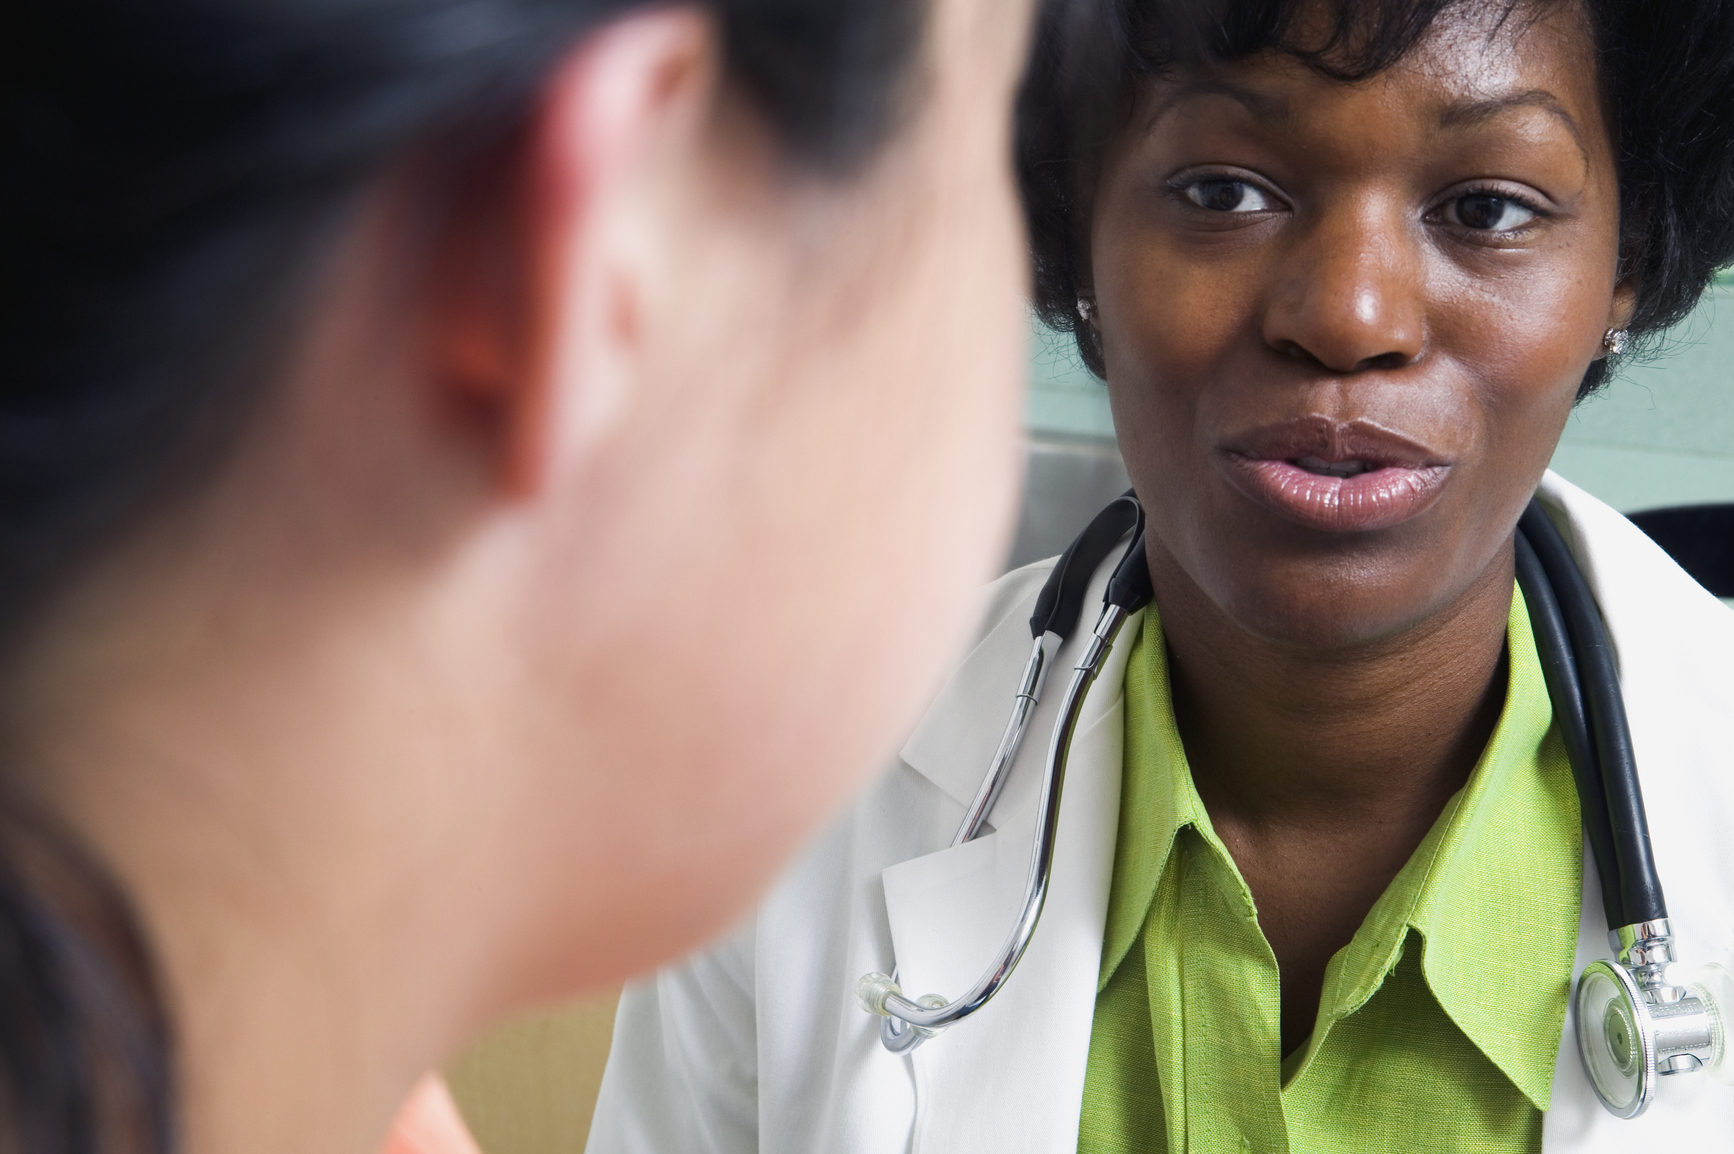 Close up of doctor talking to patient